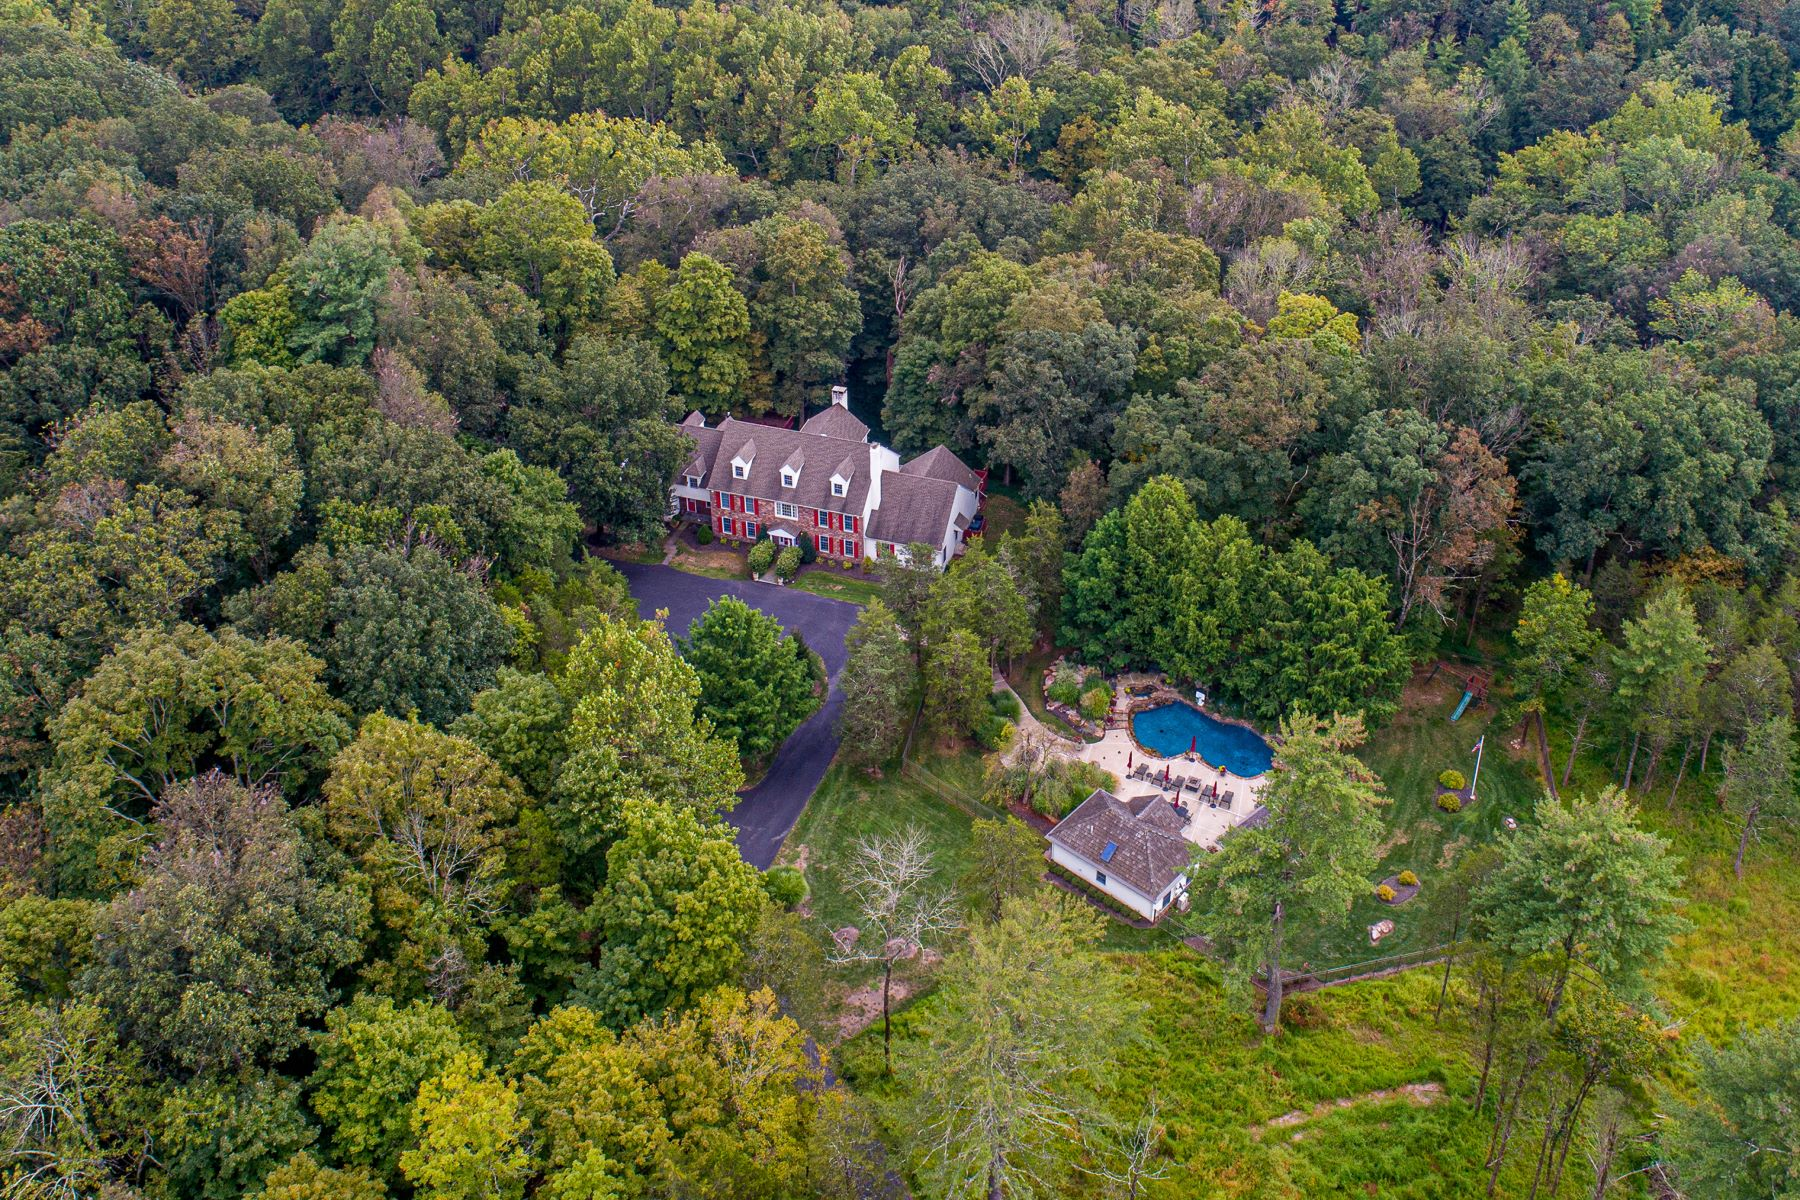 Single Family Homes for Sale at Erwinna, Pennsylvania 18920 United States